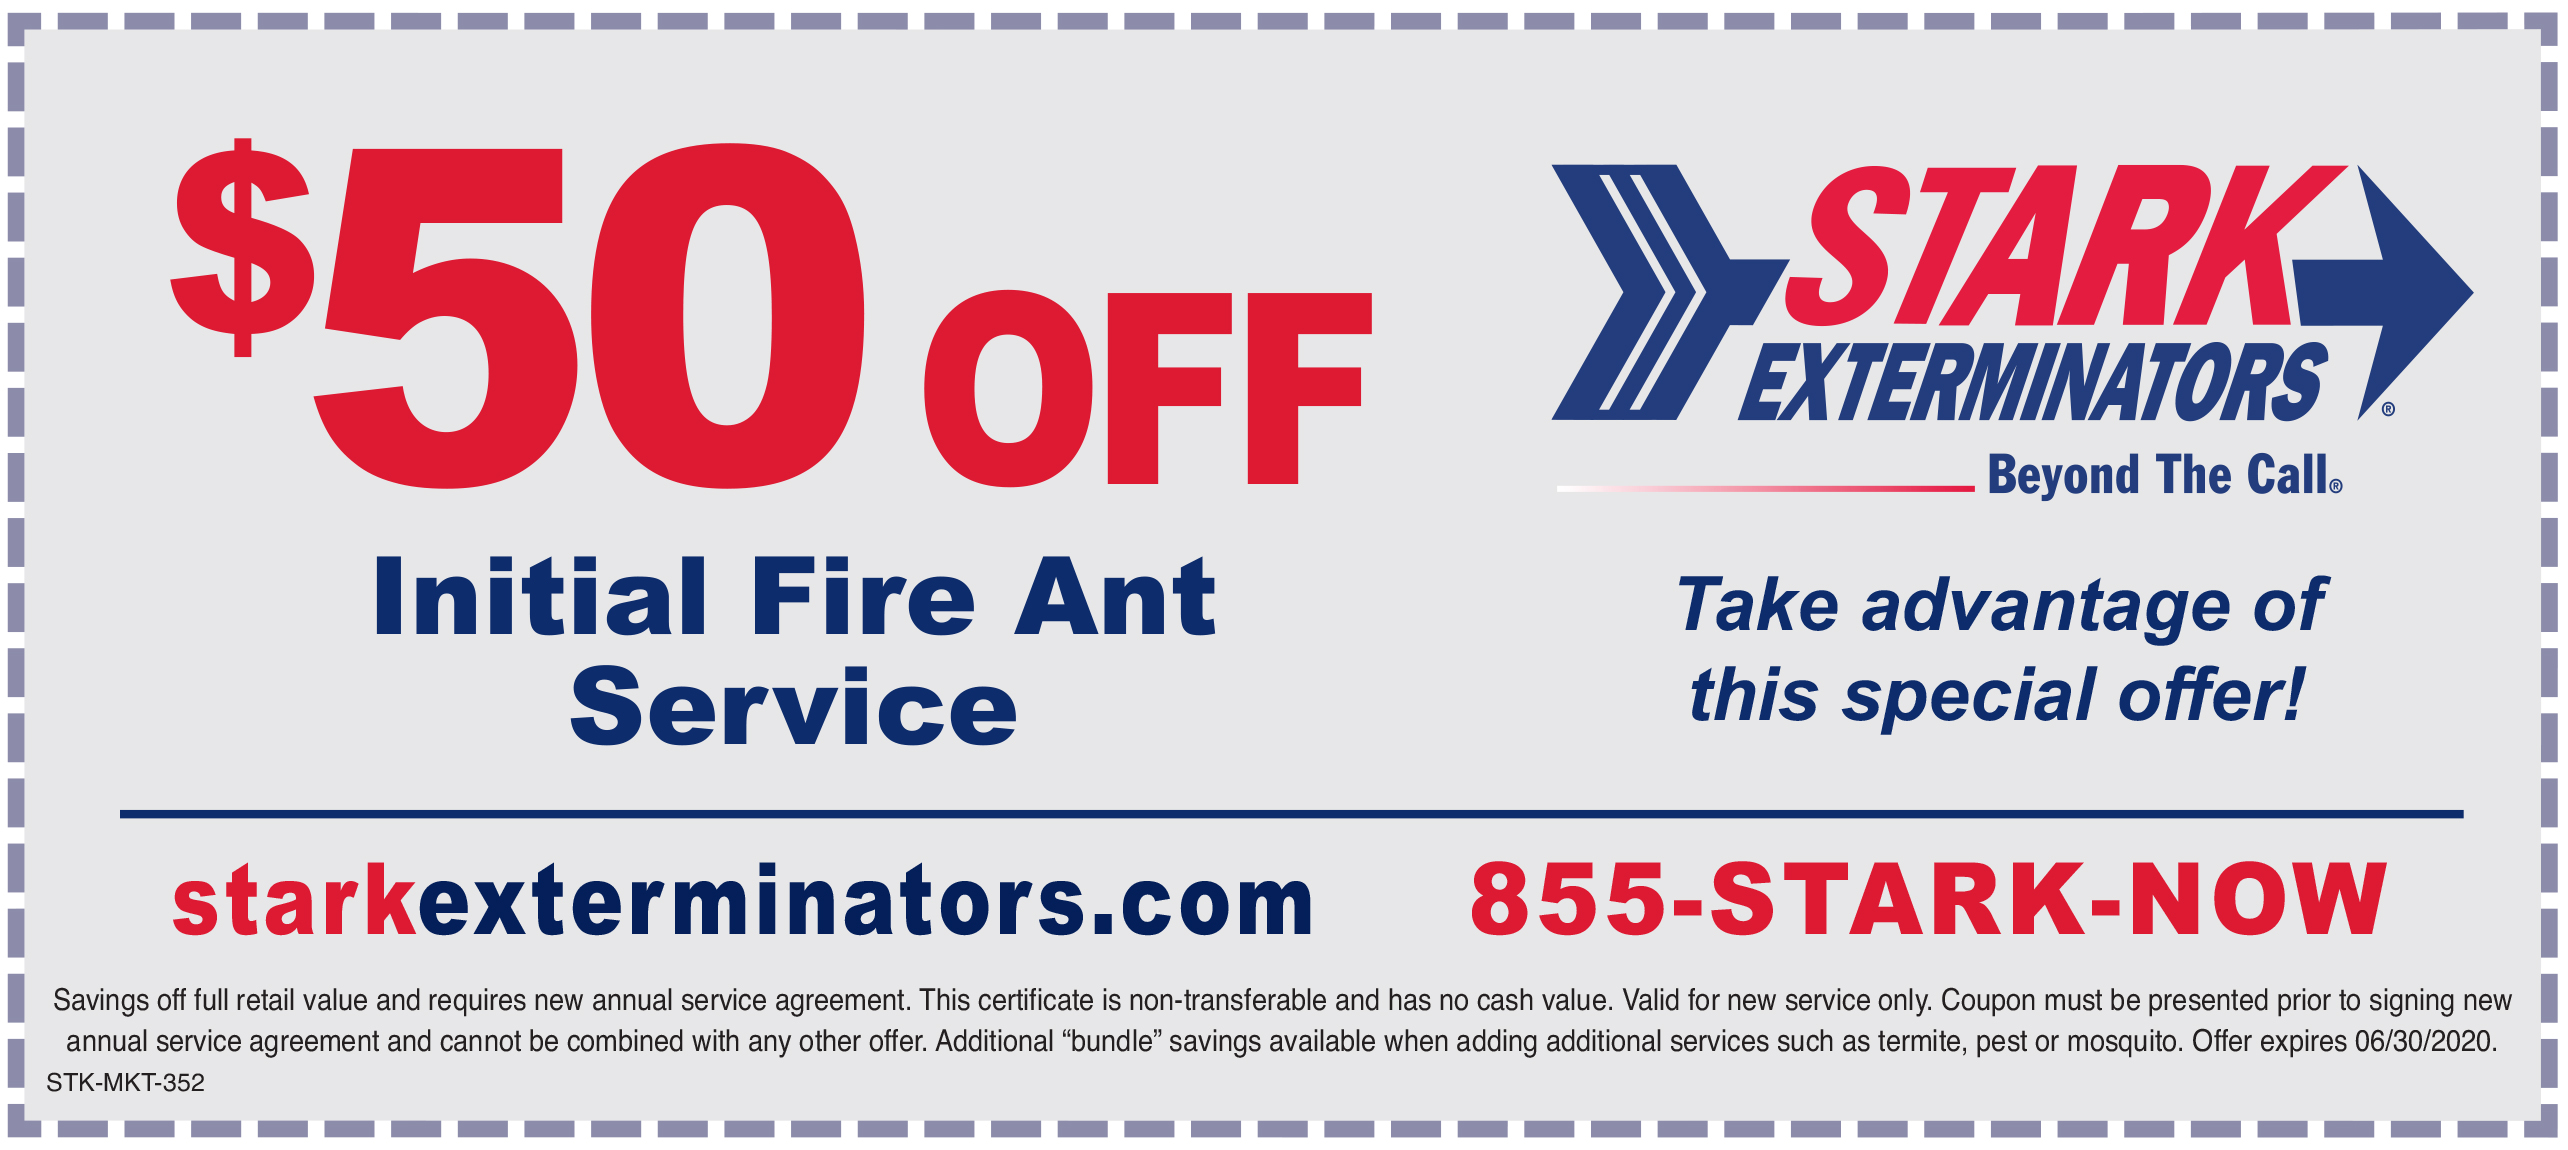 coupon-fire_ant-stark_exp_2020.jpg